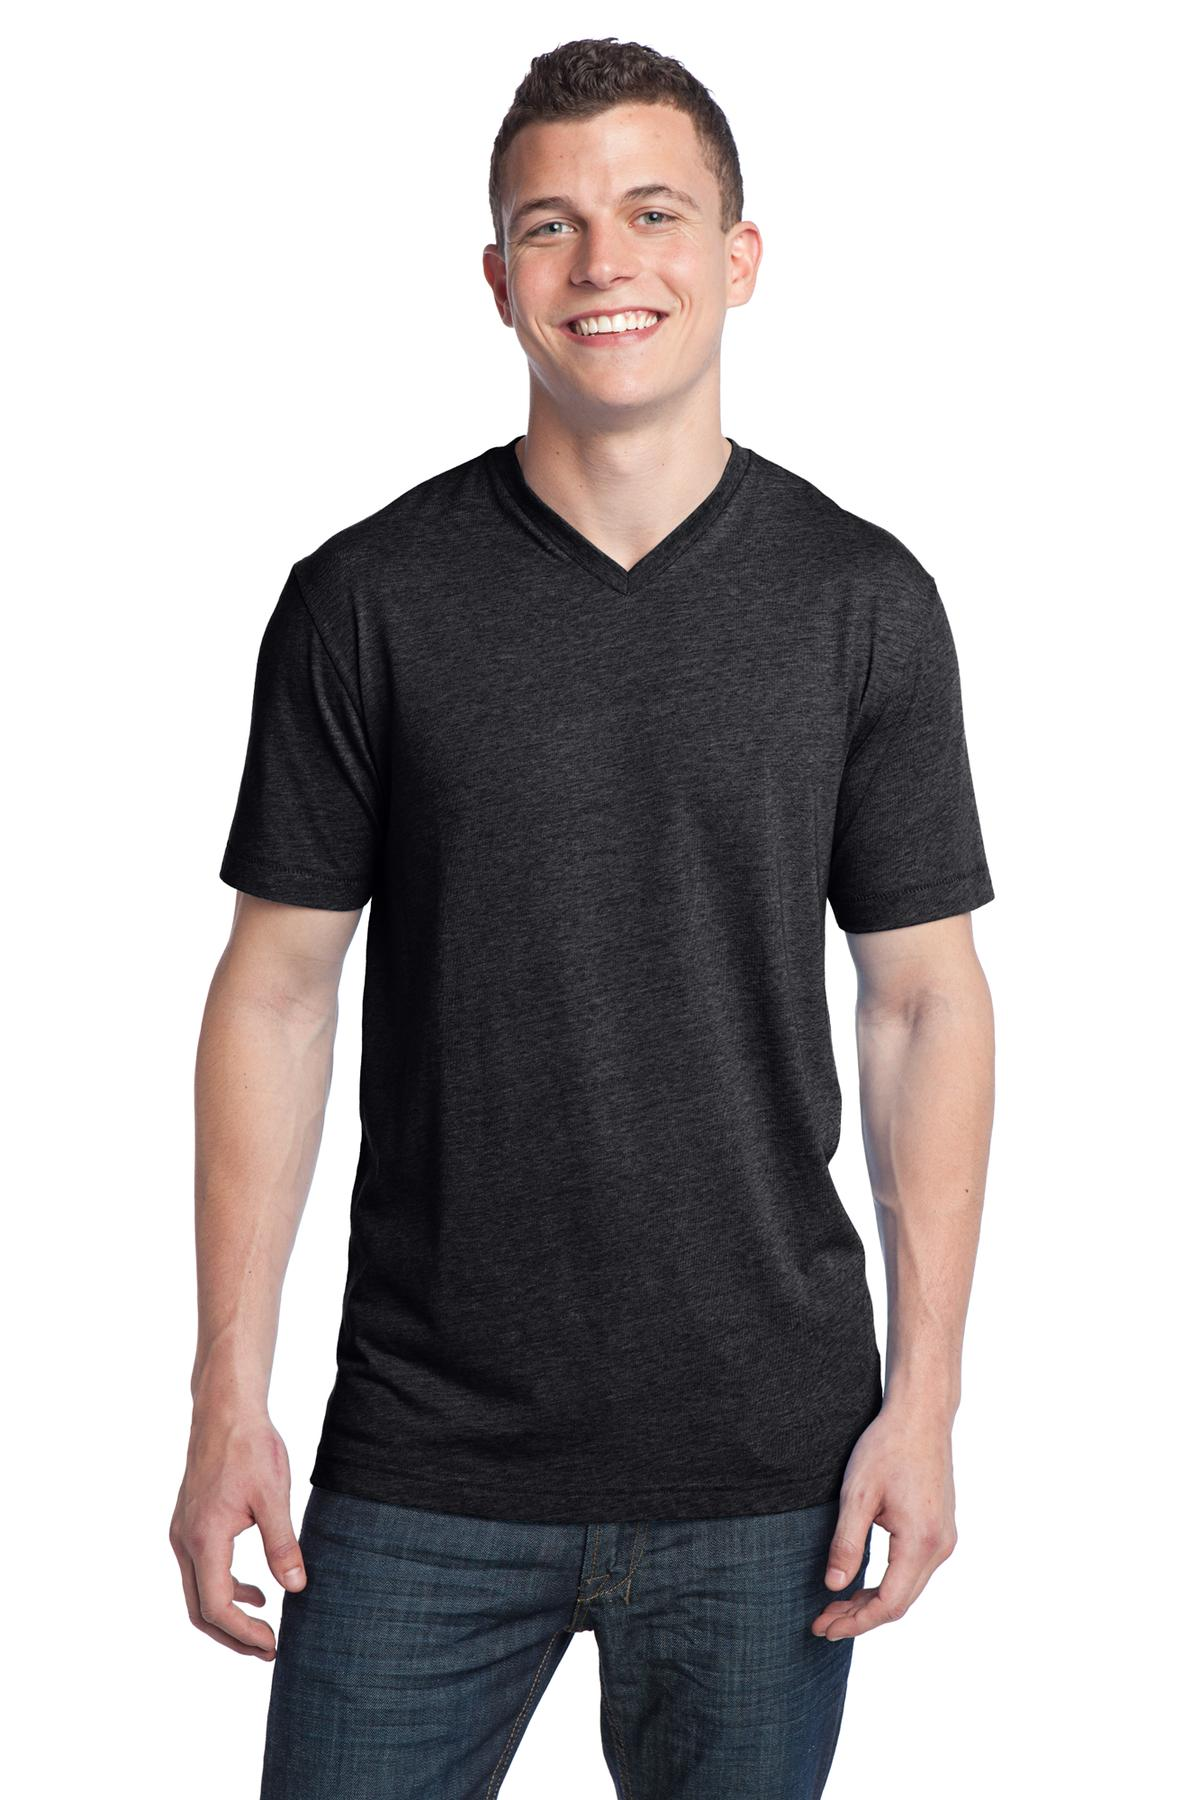 District ®  - Young Mens Tri-Blend V-Neck Tee DT142V